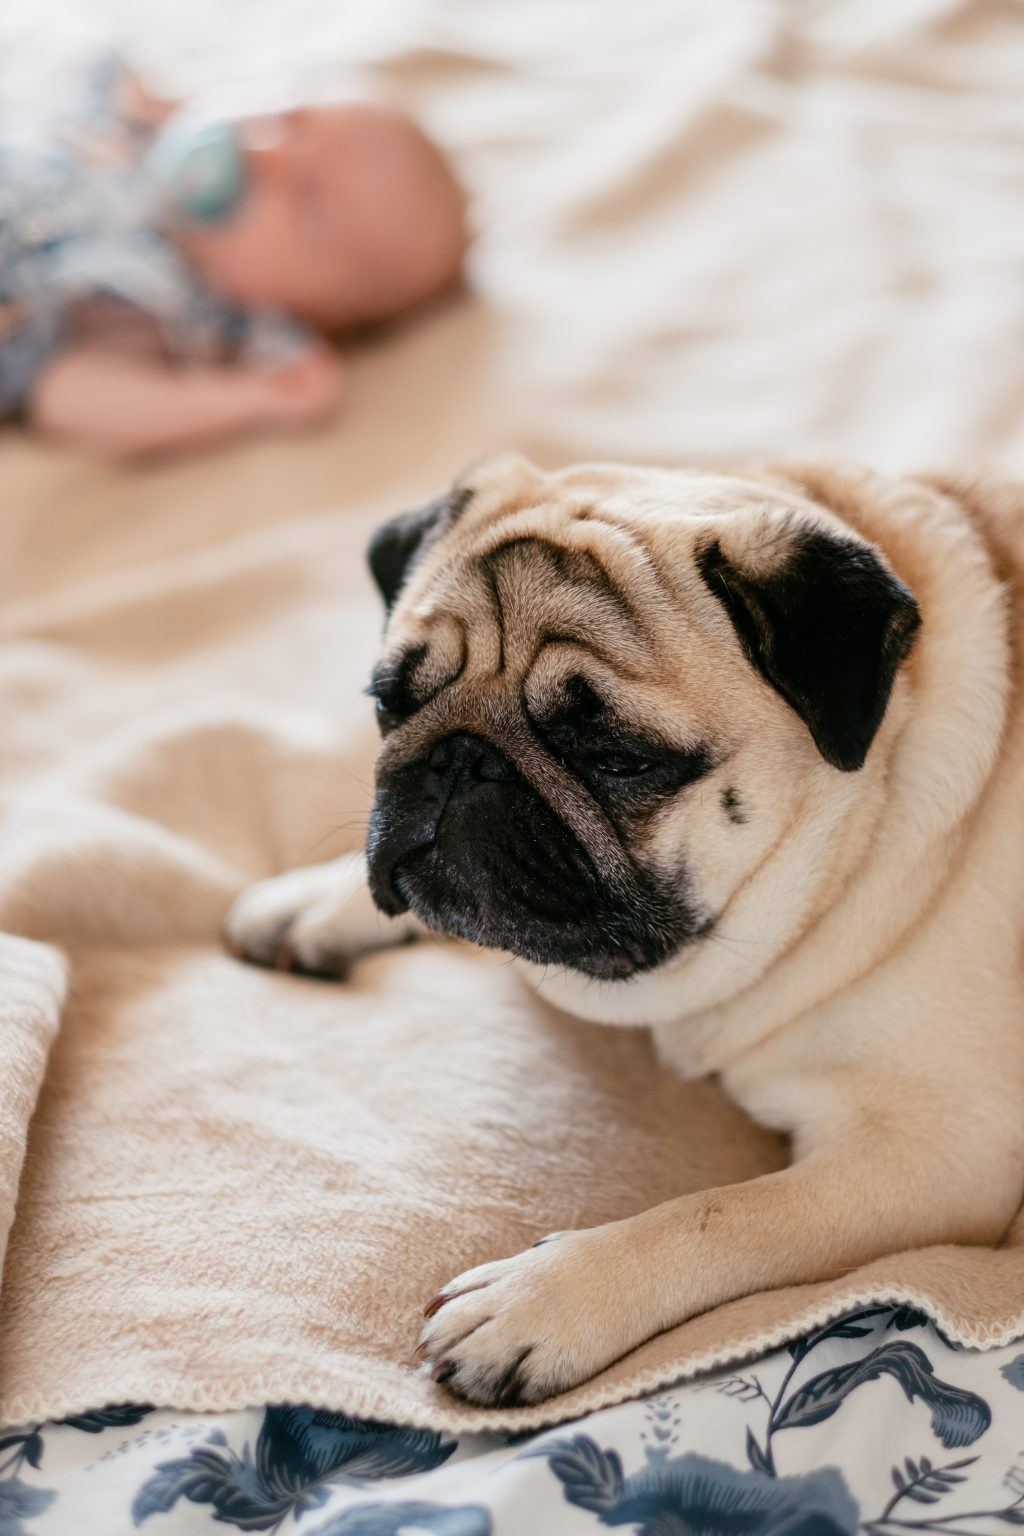 A pug lying on a bed with a baby - free stock photo